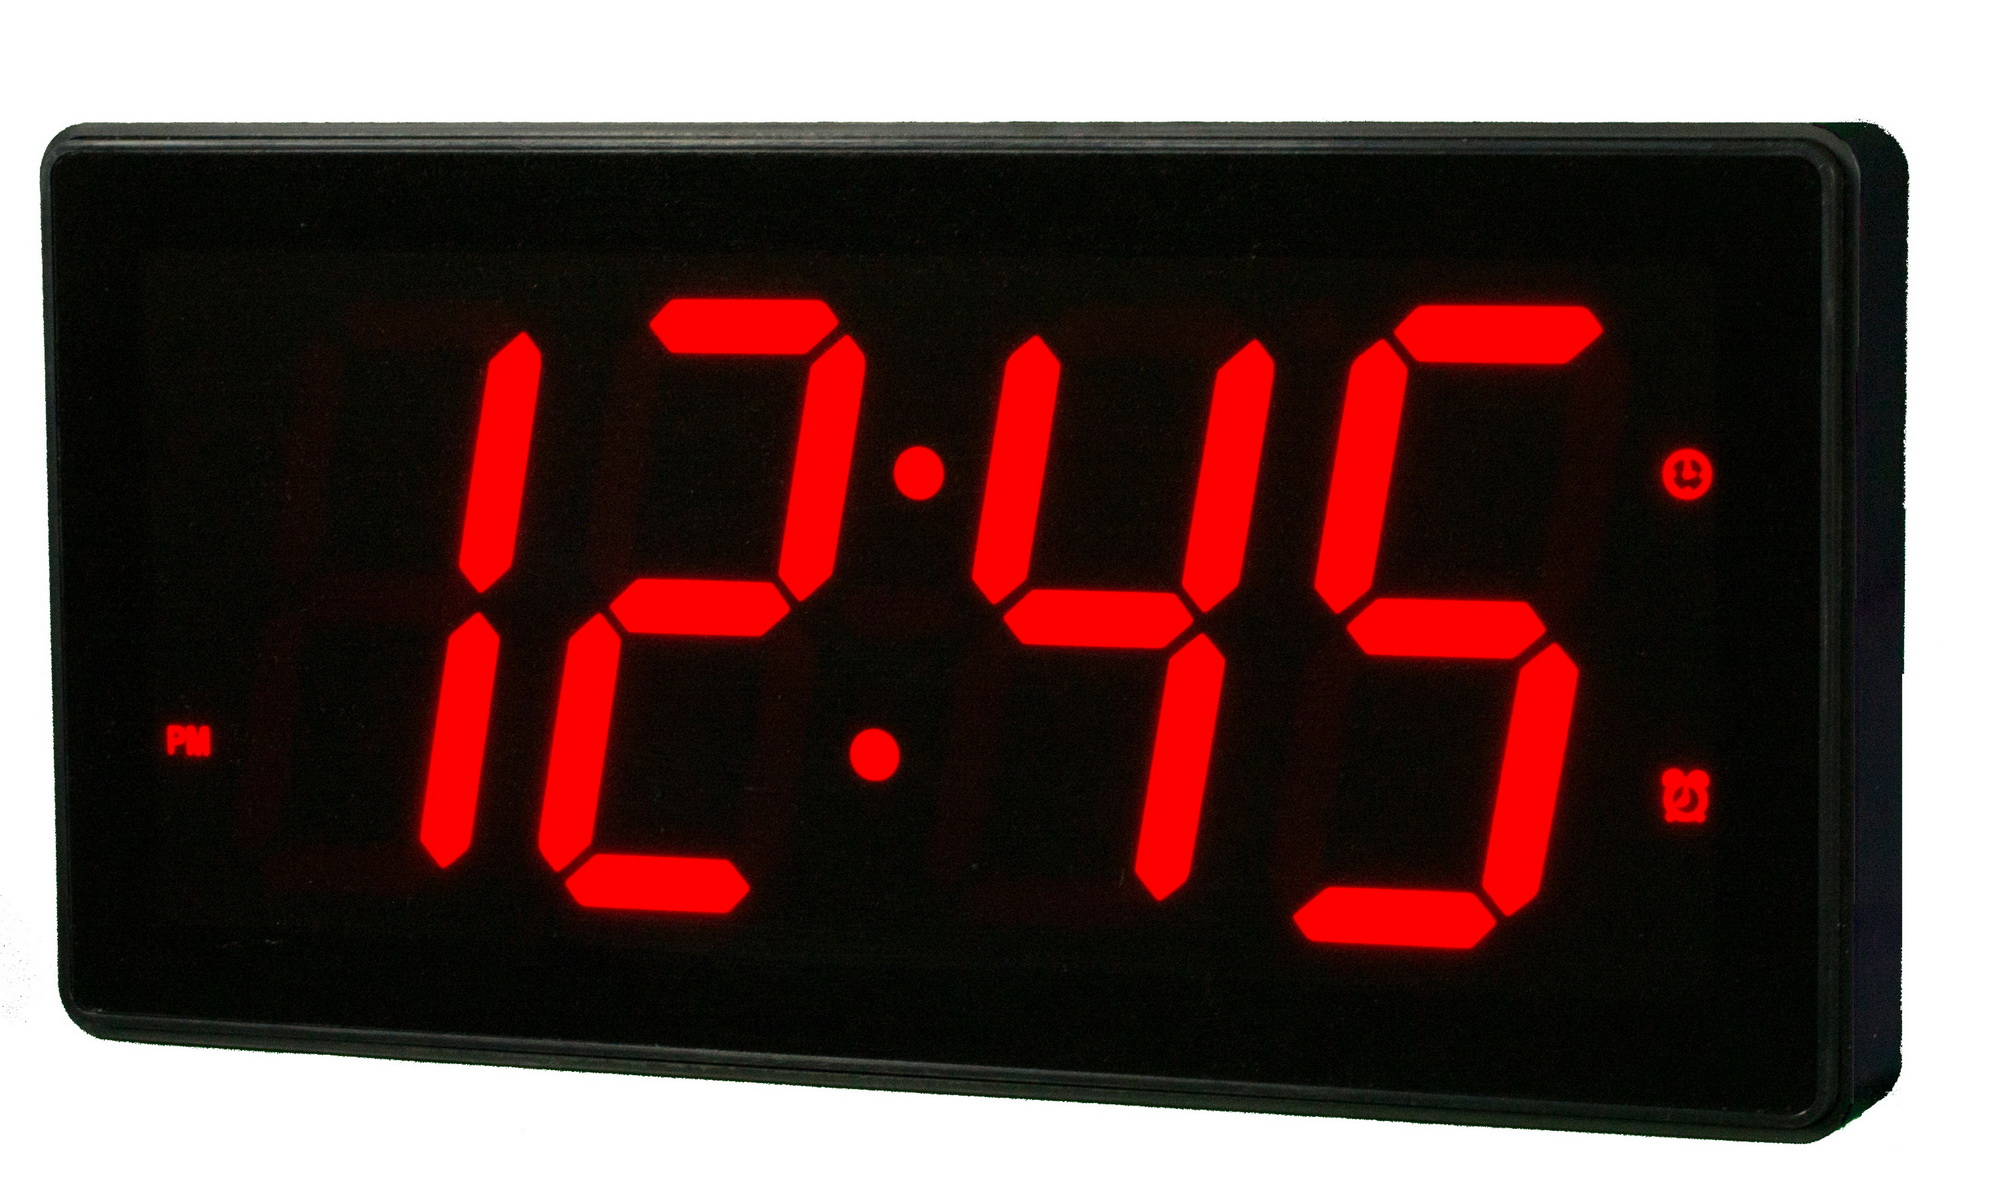 Clockway 125in abbeville 4in digit large led walldesk clock 16 clockway 125in abbeville 4in digit large led walldesk clock 16 alarms remote control by aqua pear amipublicfo Images